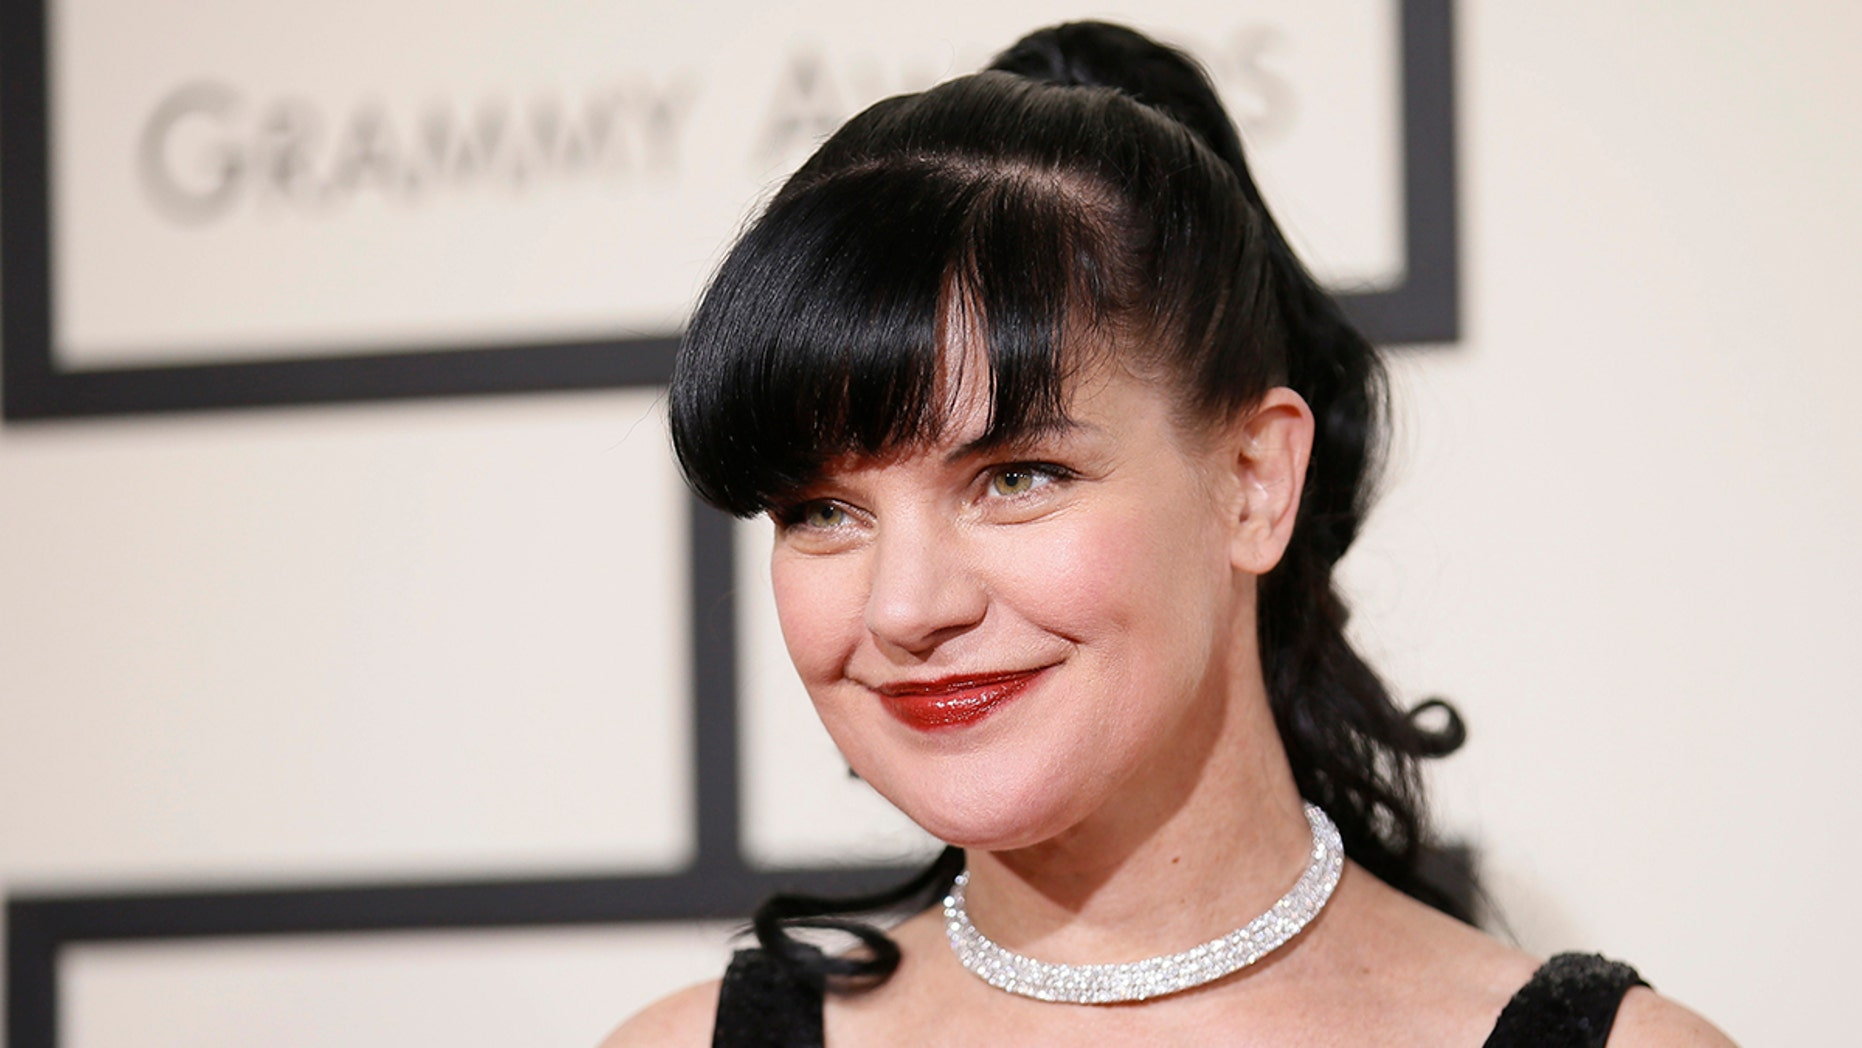 Actress Pauley Perrette arrives at the 58th Grammy Awards in Los Angeles, California February 15, 2016.  REUTERS/Danny Moloshok - TB3EC2G01YL9R